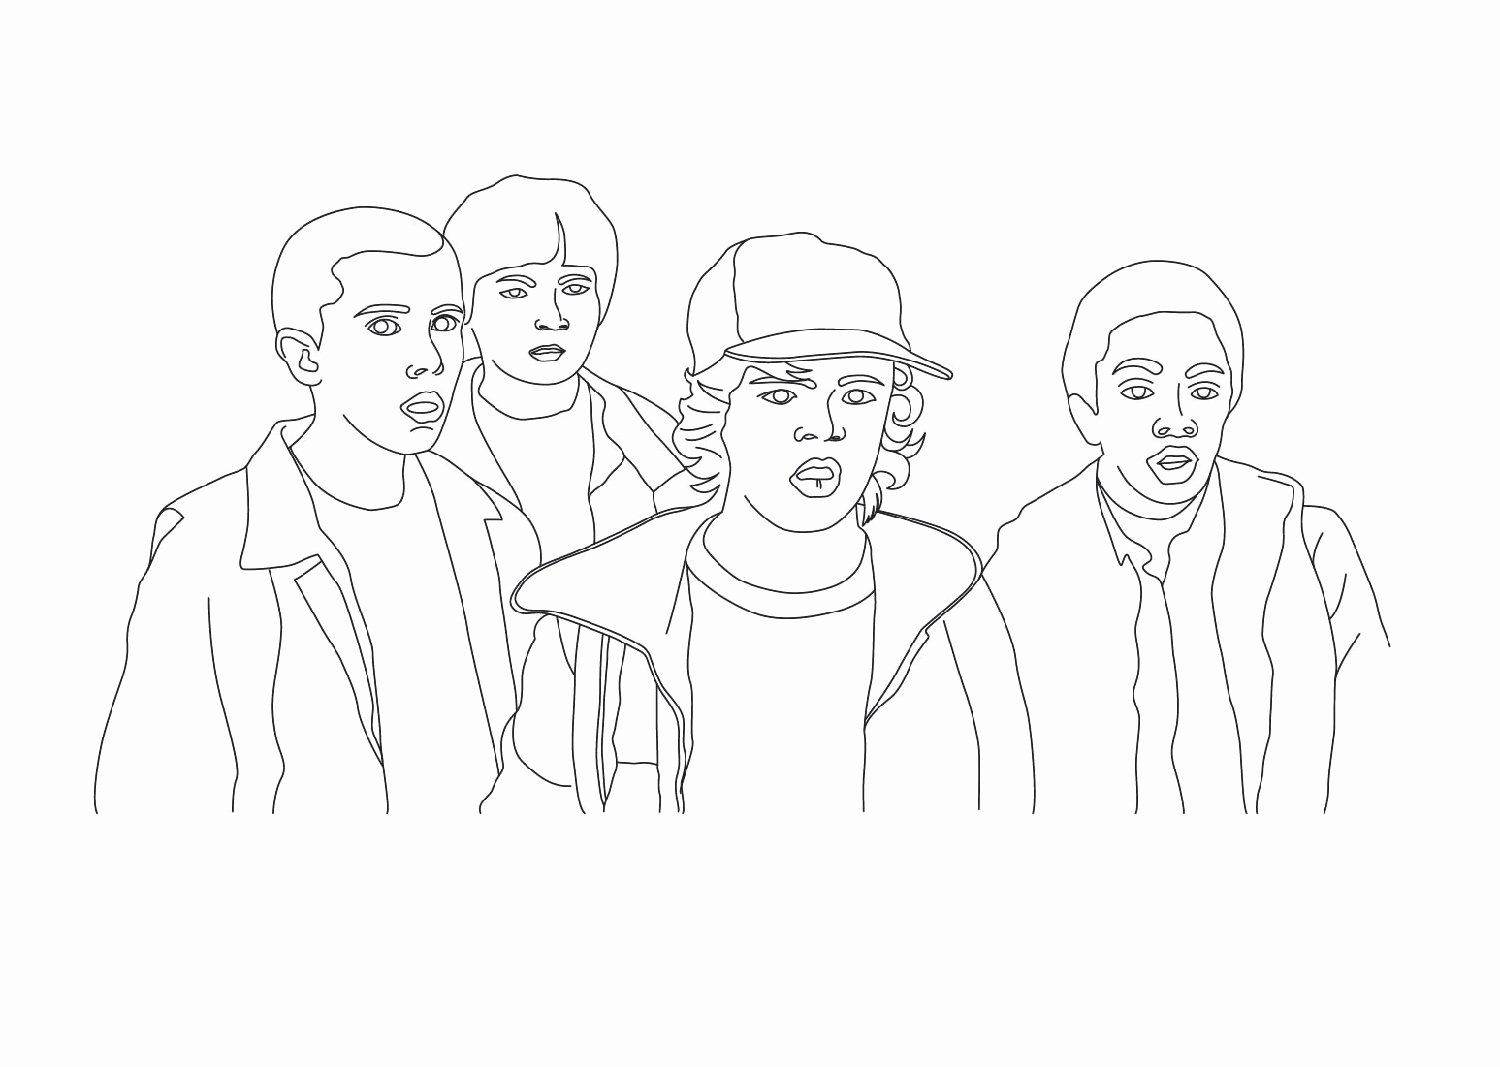 28 Stranger Things Coloring Book in 2020 Coloring books